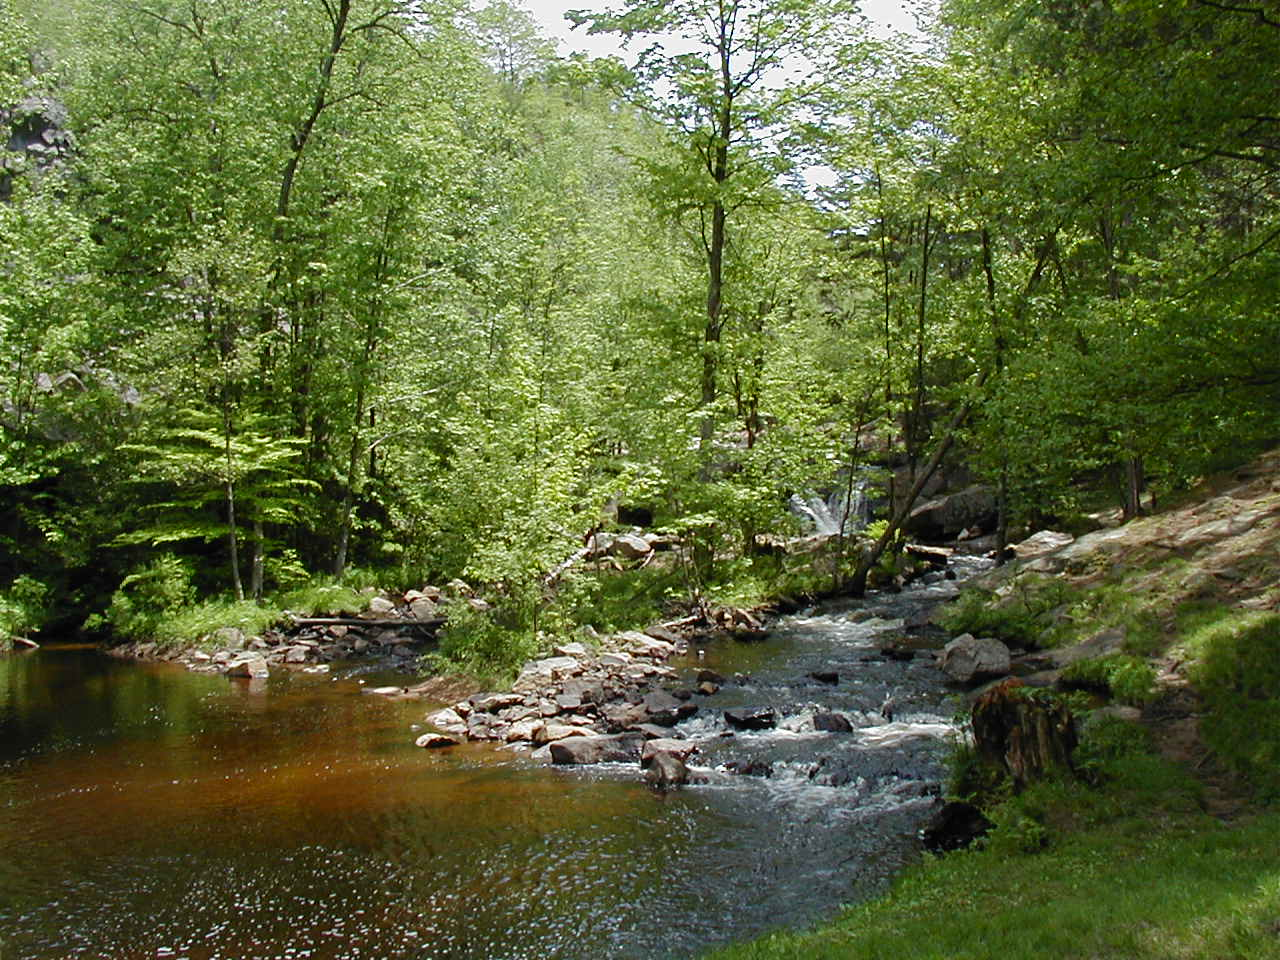 Greenwood Creek